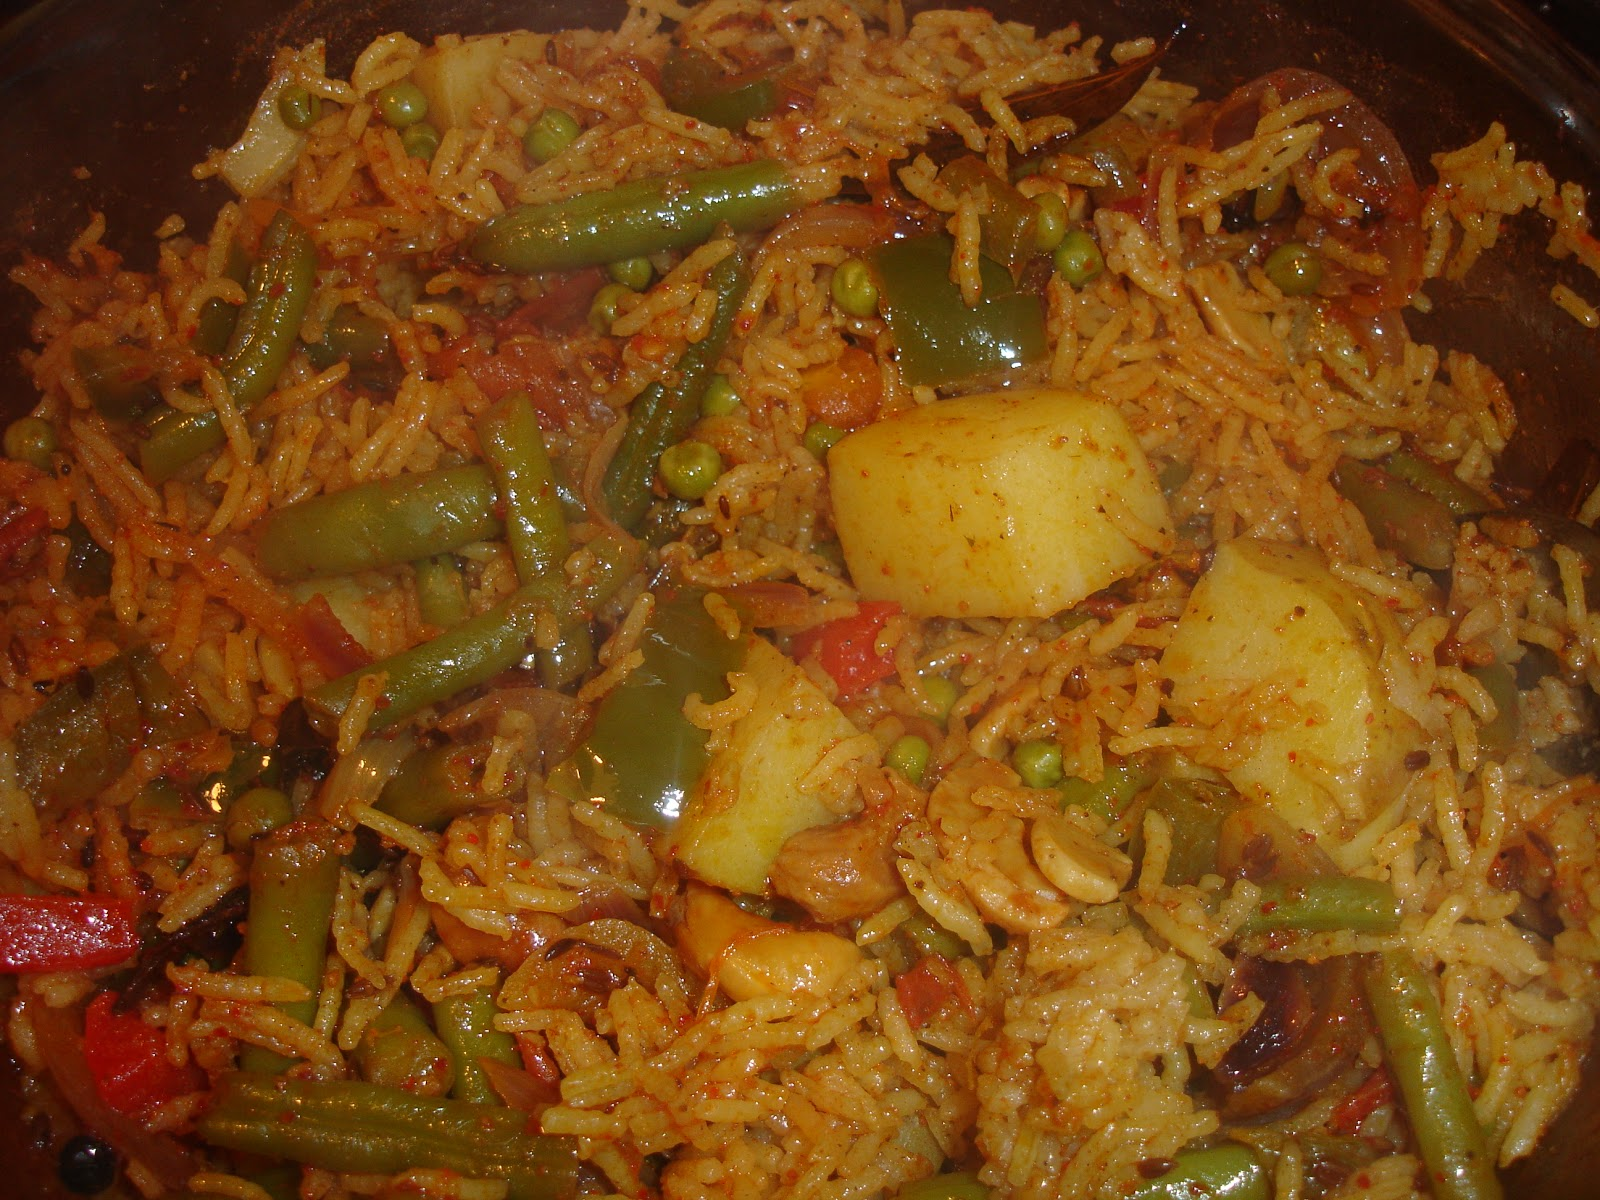 Delicious Indian Recipes and more!: Vegetable Rice or Vegetable Pulao